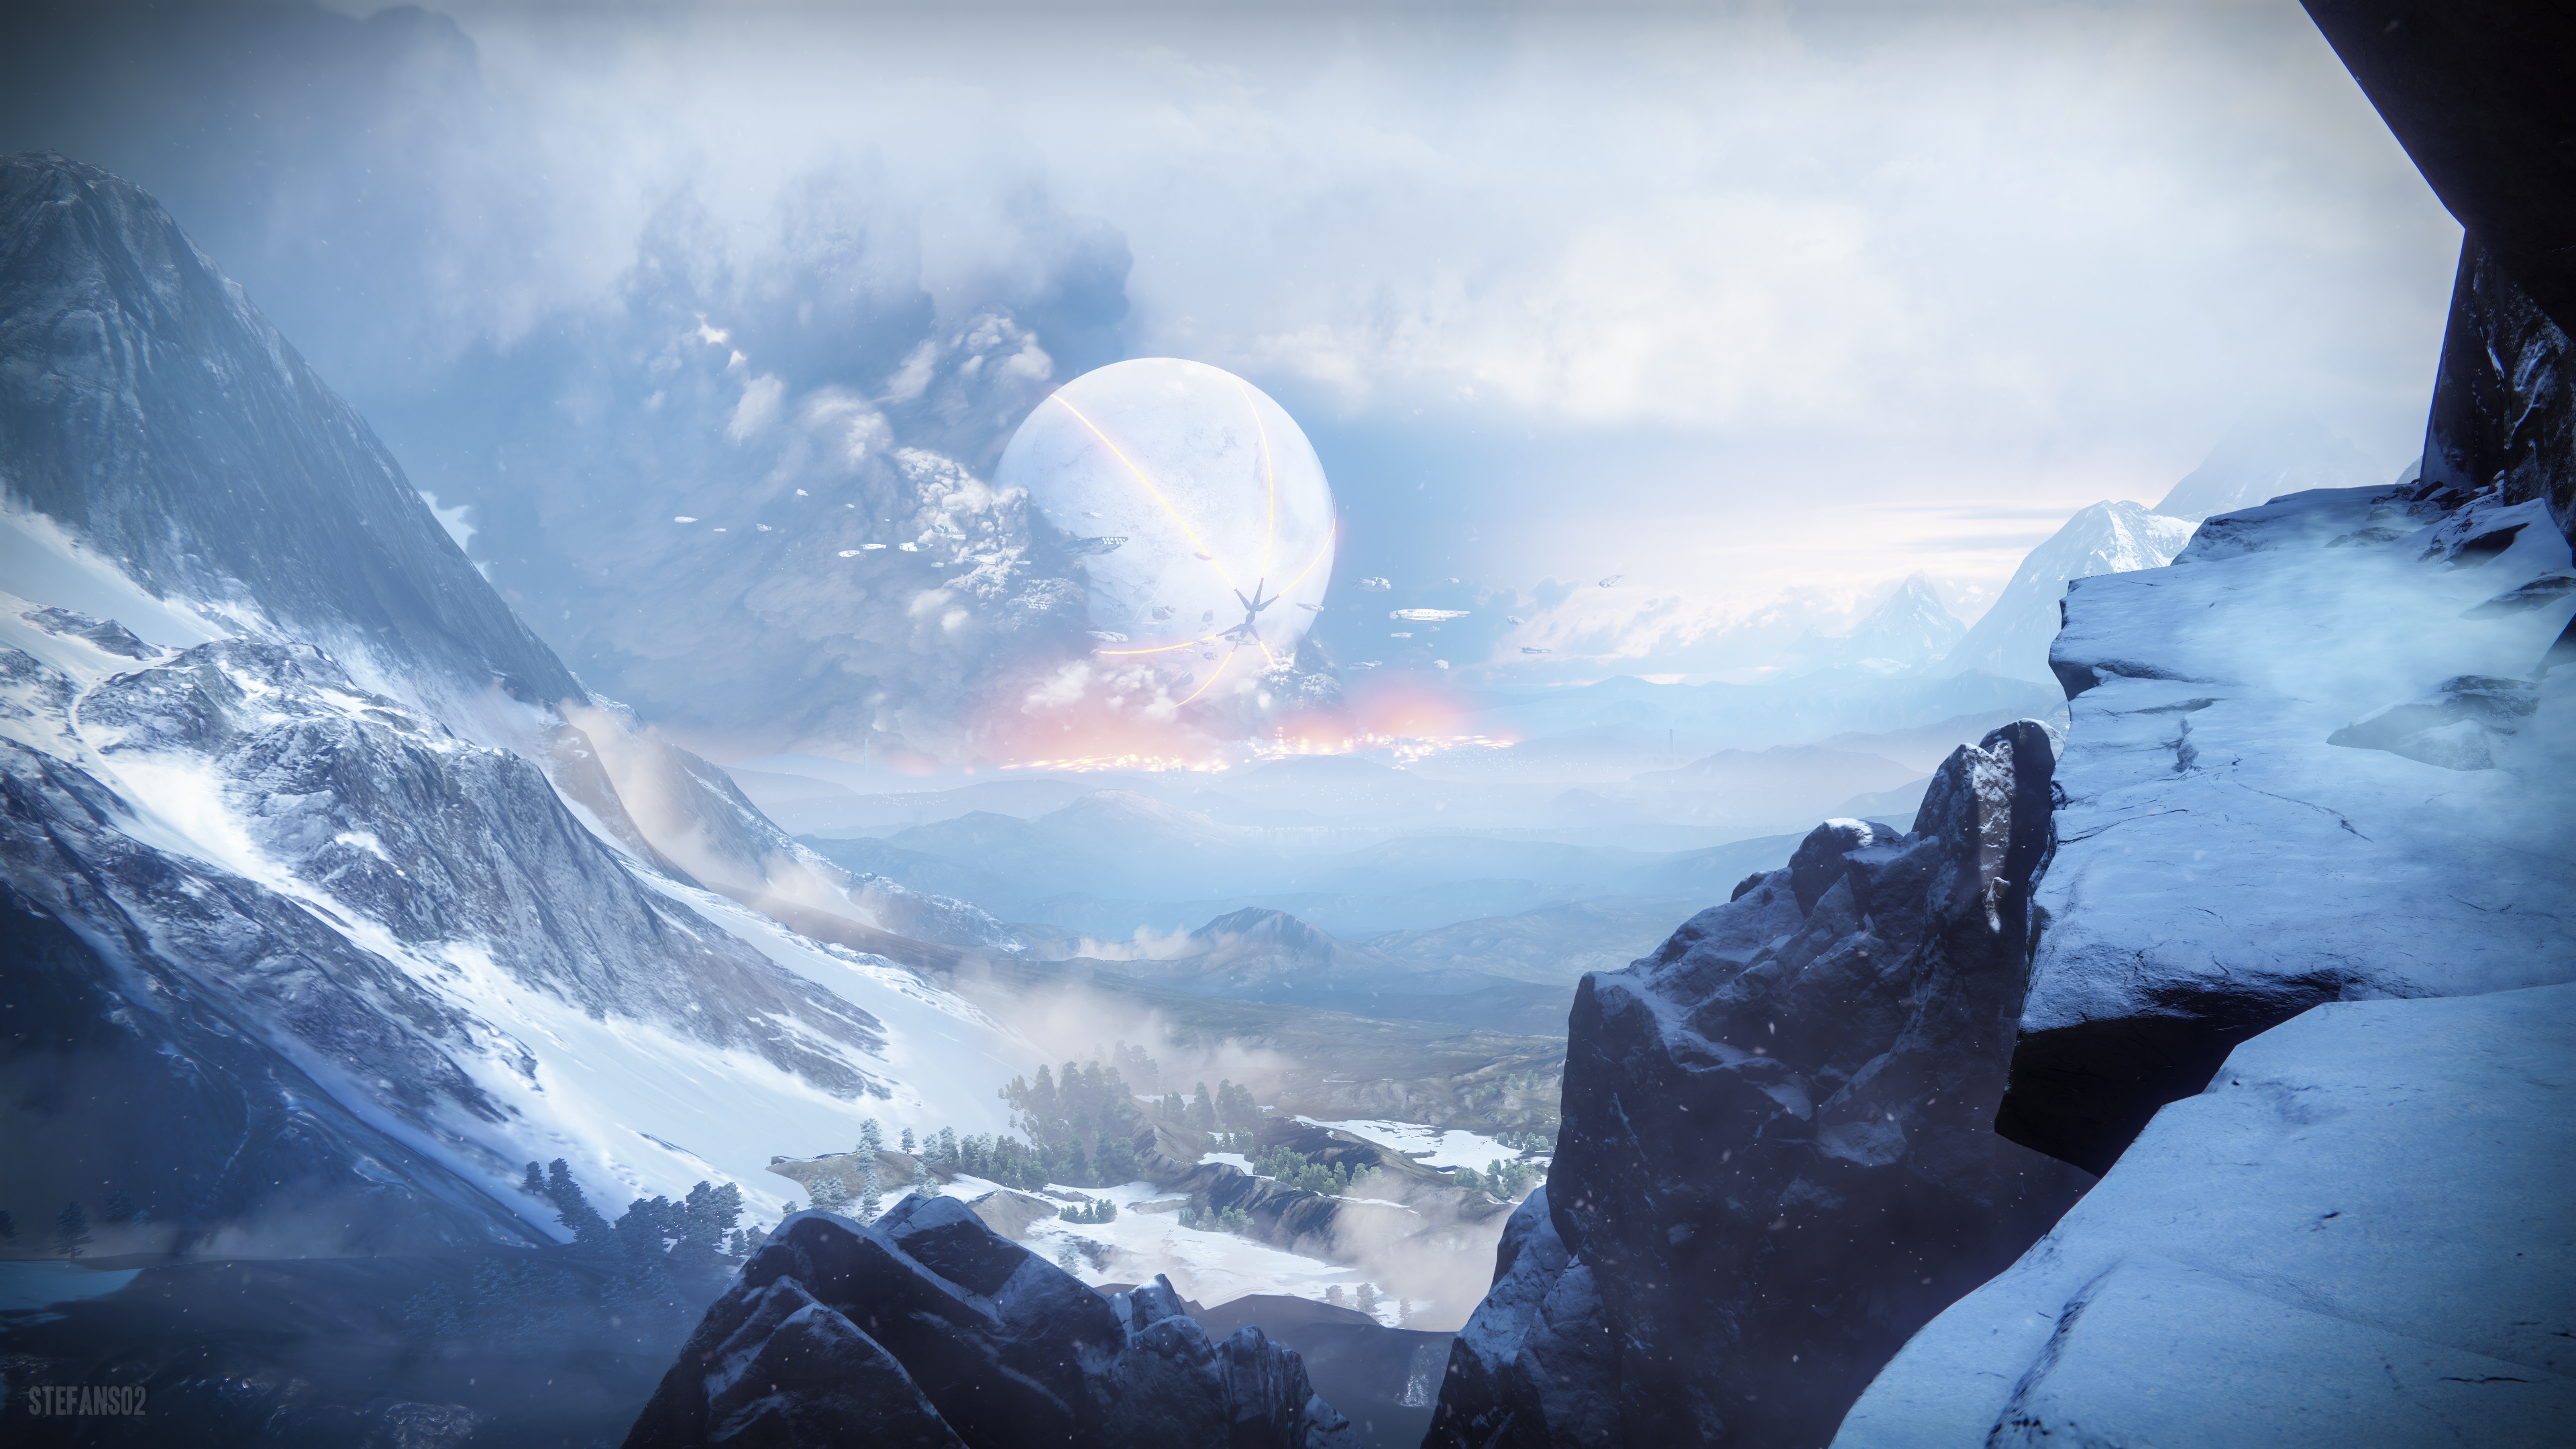 Destiny 2 Wallpaper 1920x1080: 1920x1080 Destiny 2 Off The Cliff 4k Laptop Full HD 1080P